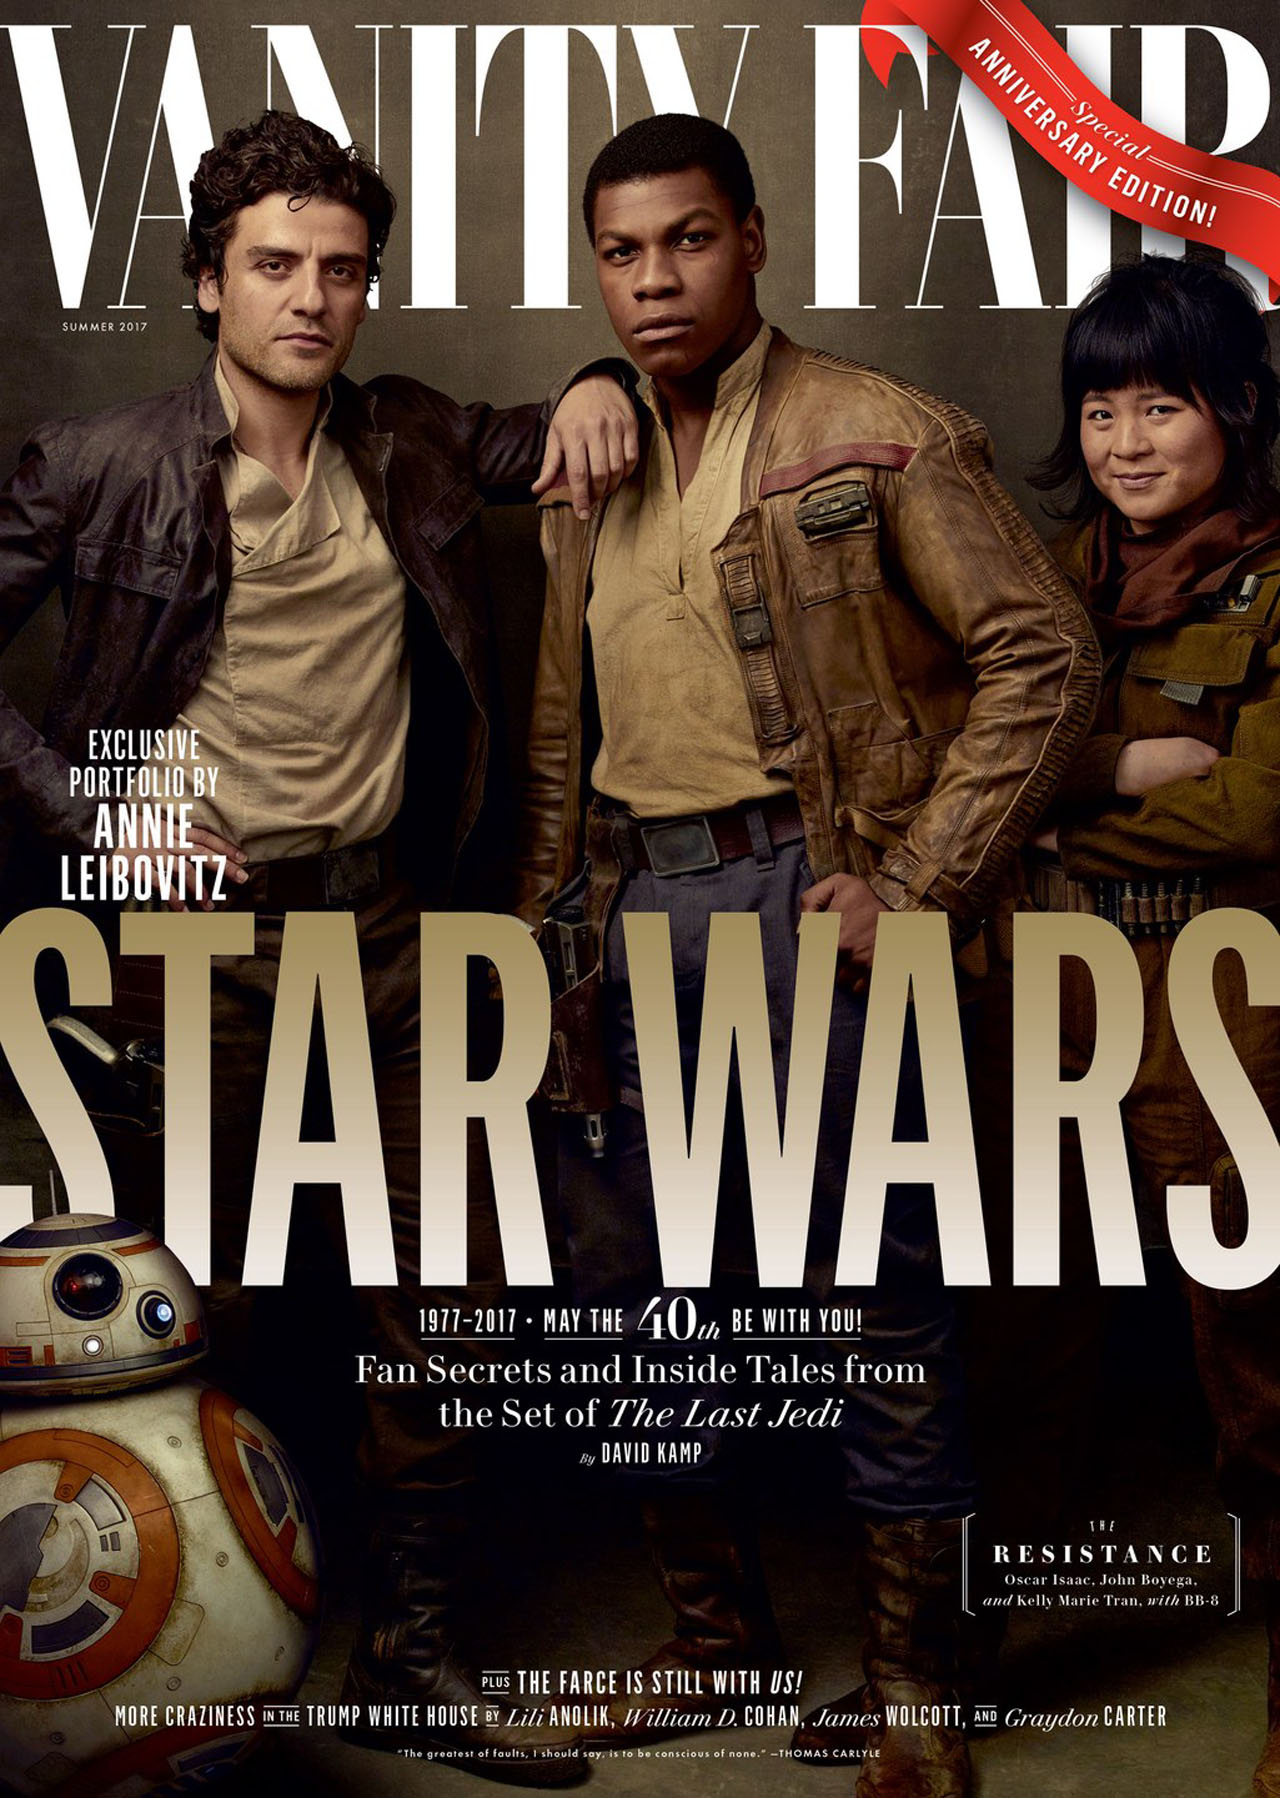 Star Wars: The Last Jedi Vanity Fair Covers